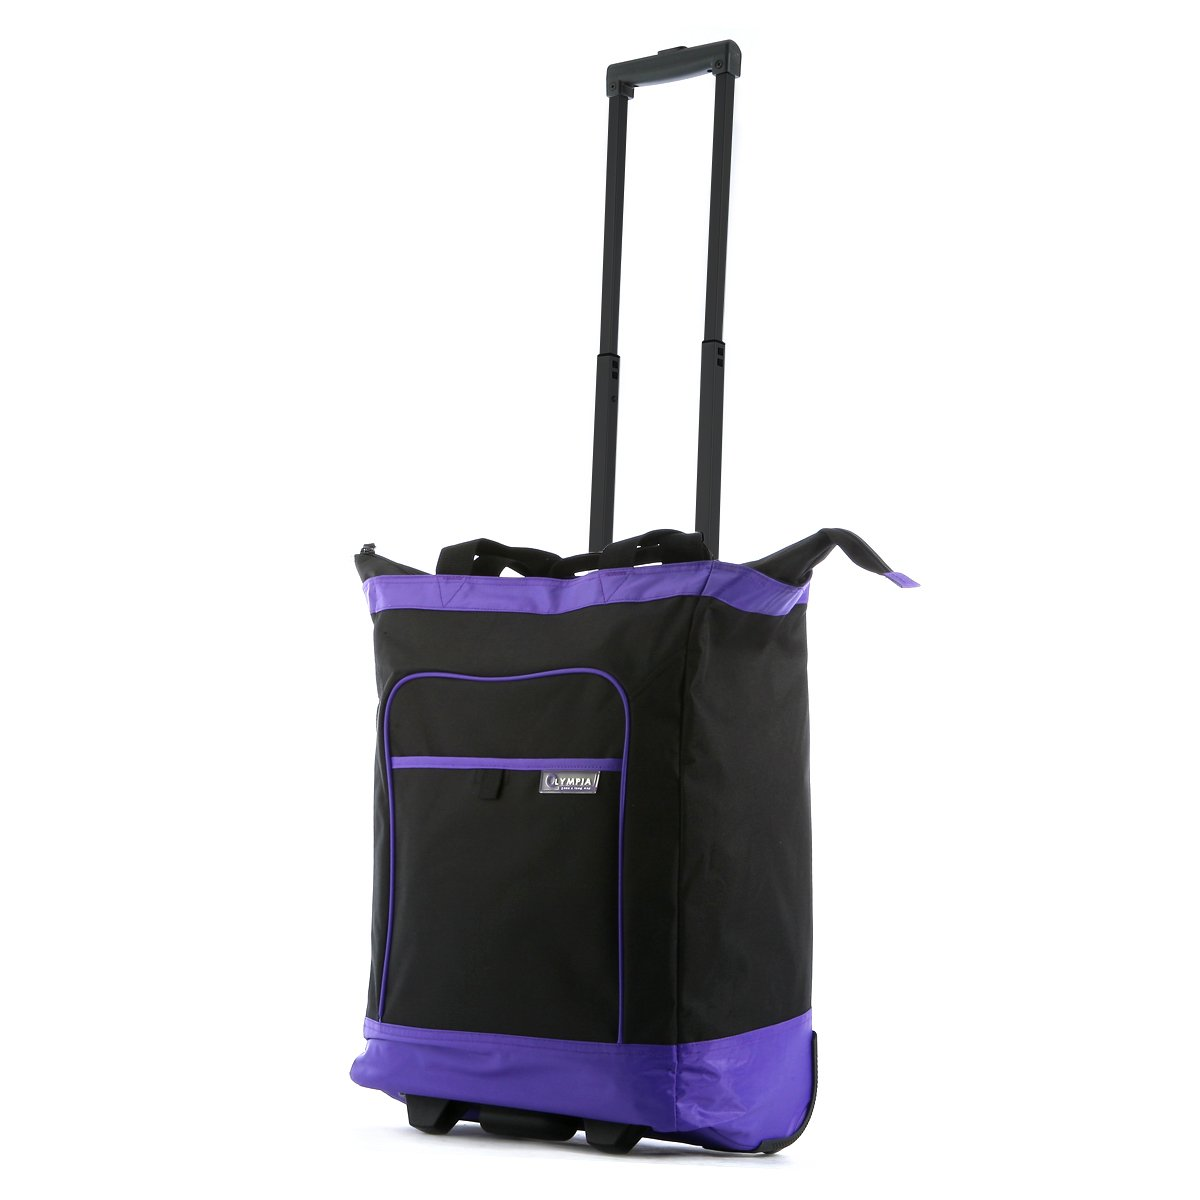 Olympia Luggage Rolling Shopper Tote, Purple, One Size